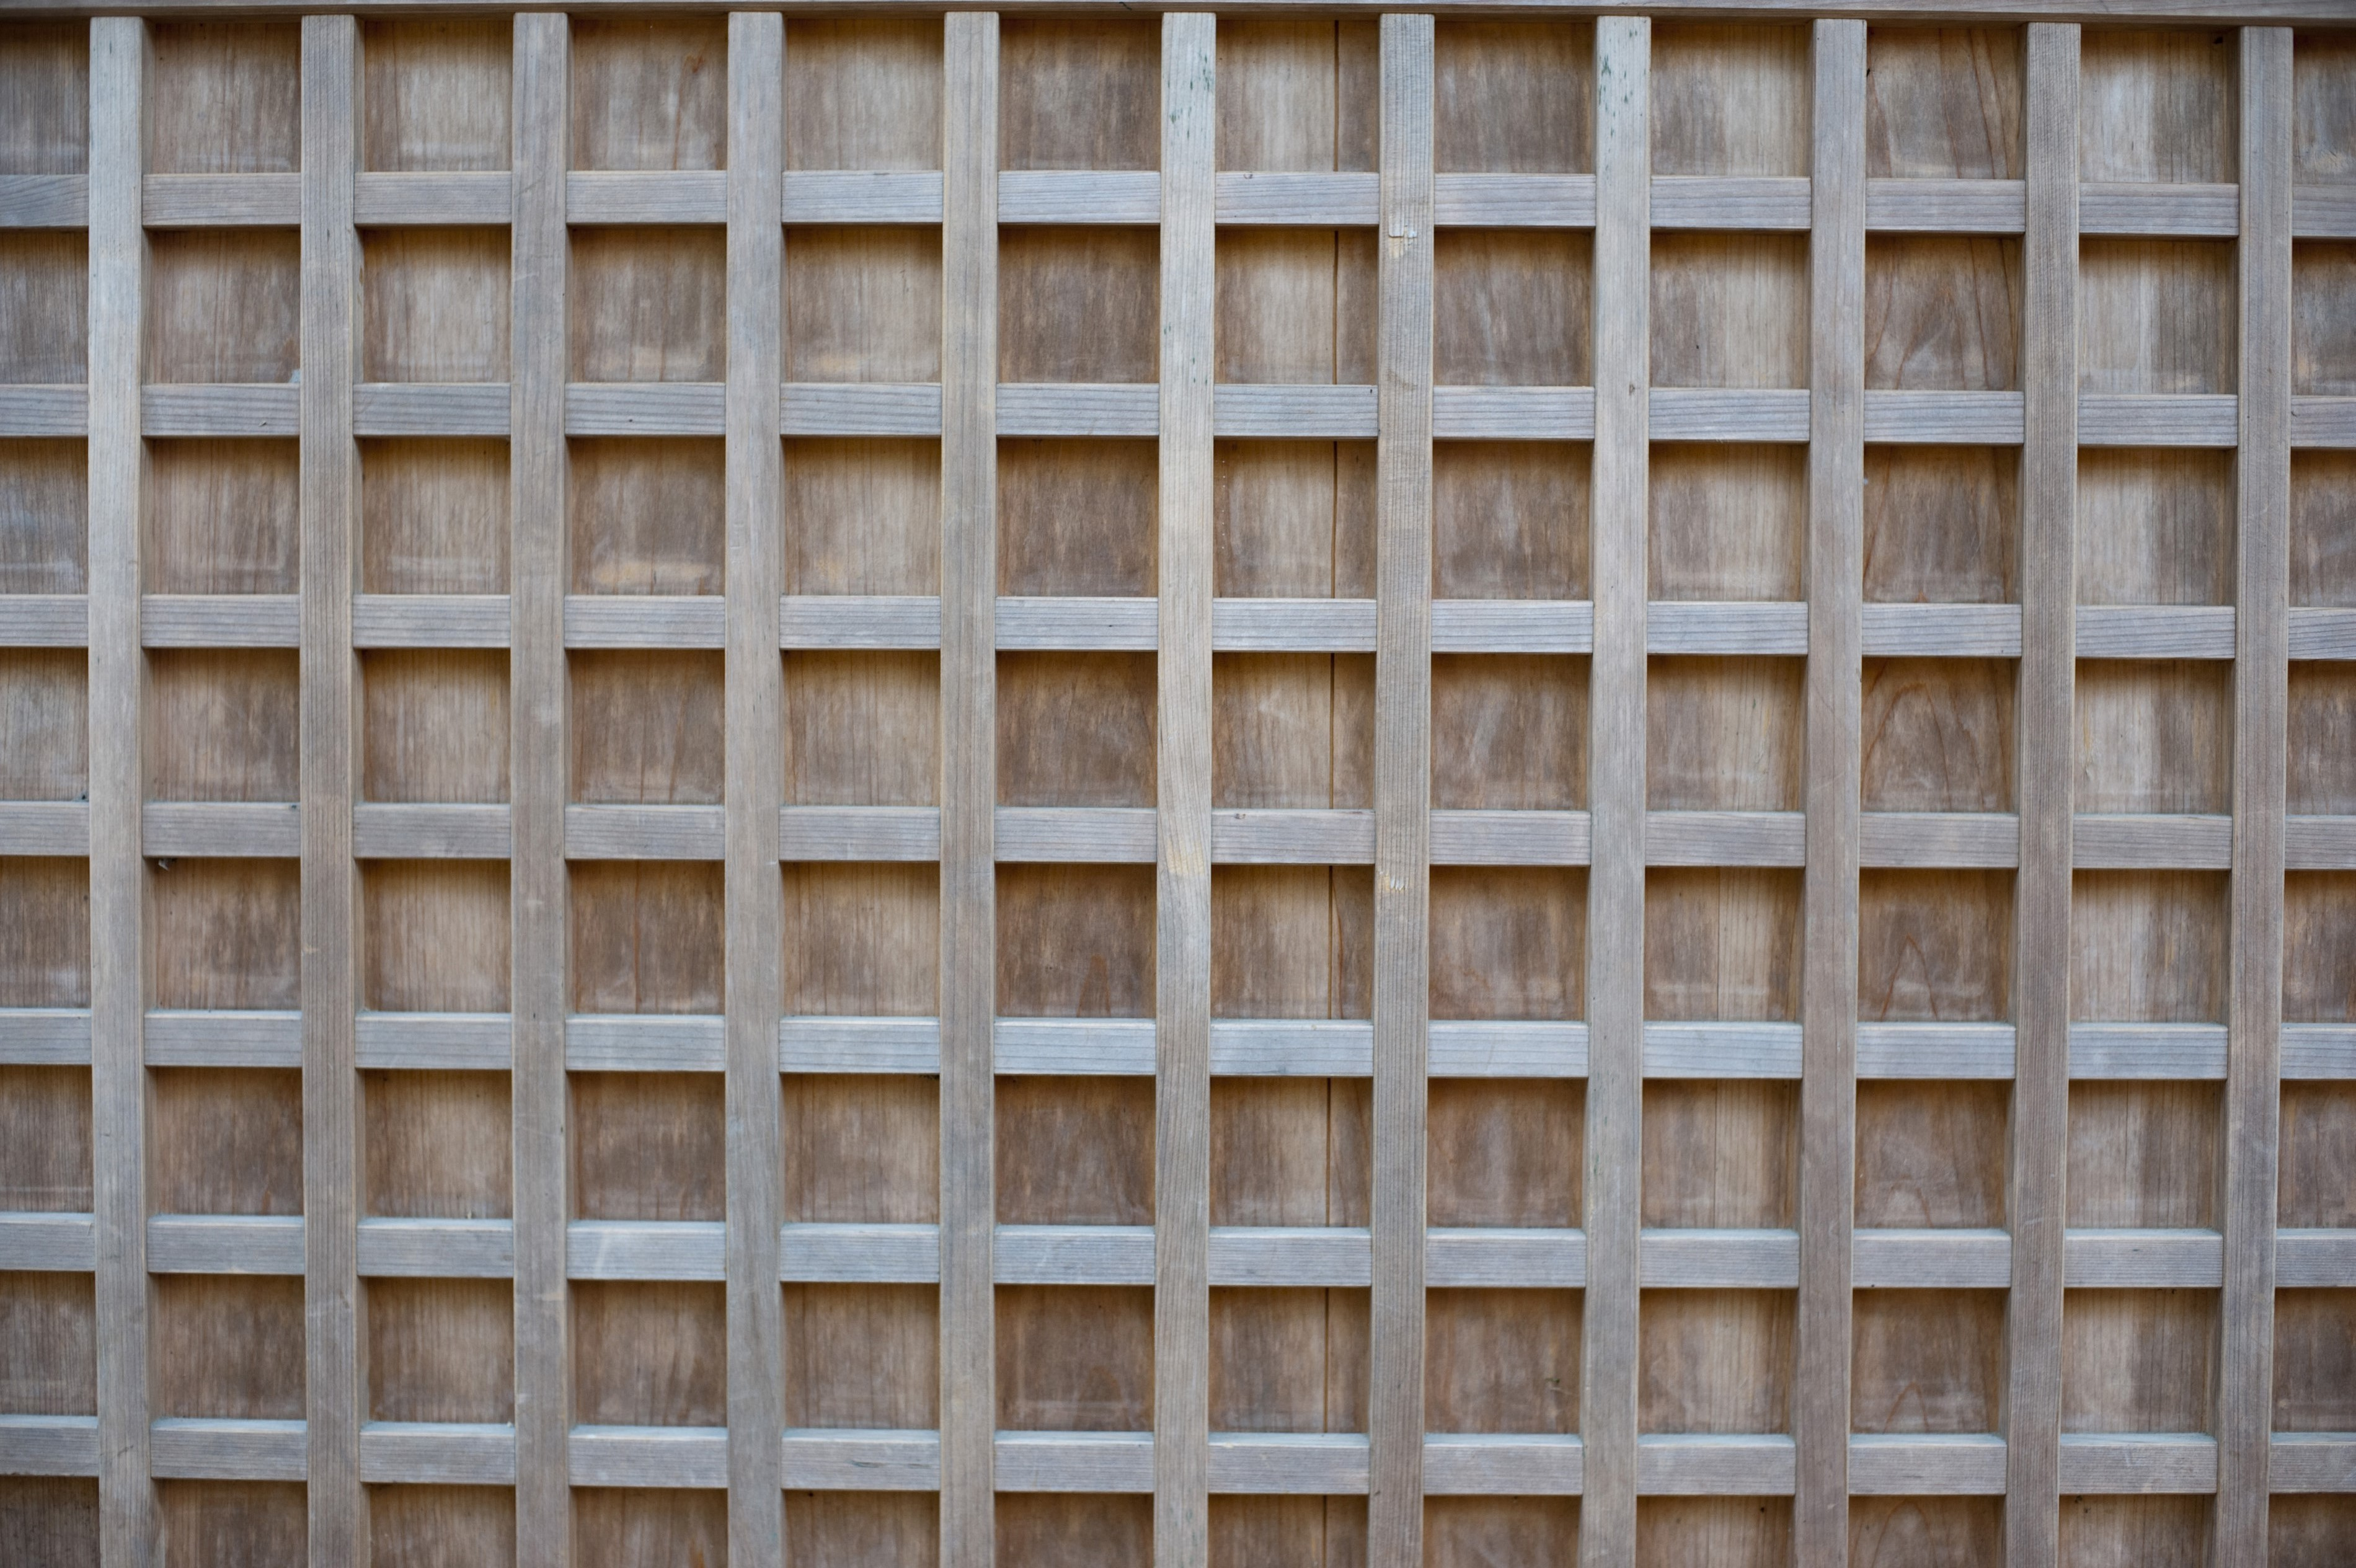 Ornamental wooden grid or trellis | Free backgrounds and textures ...